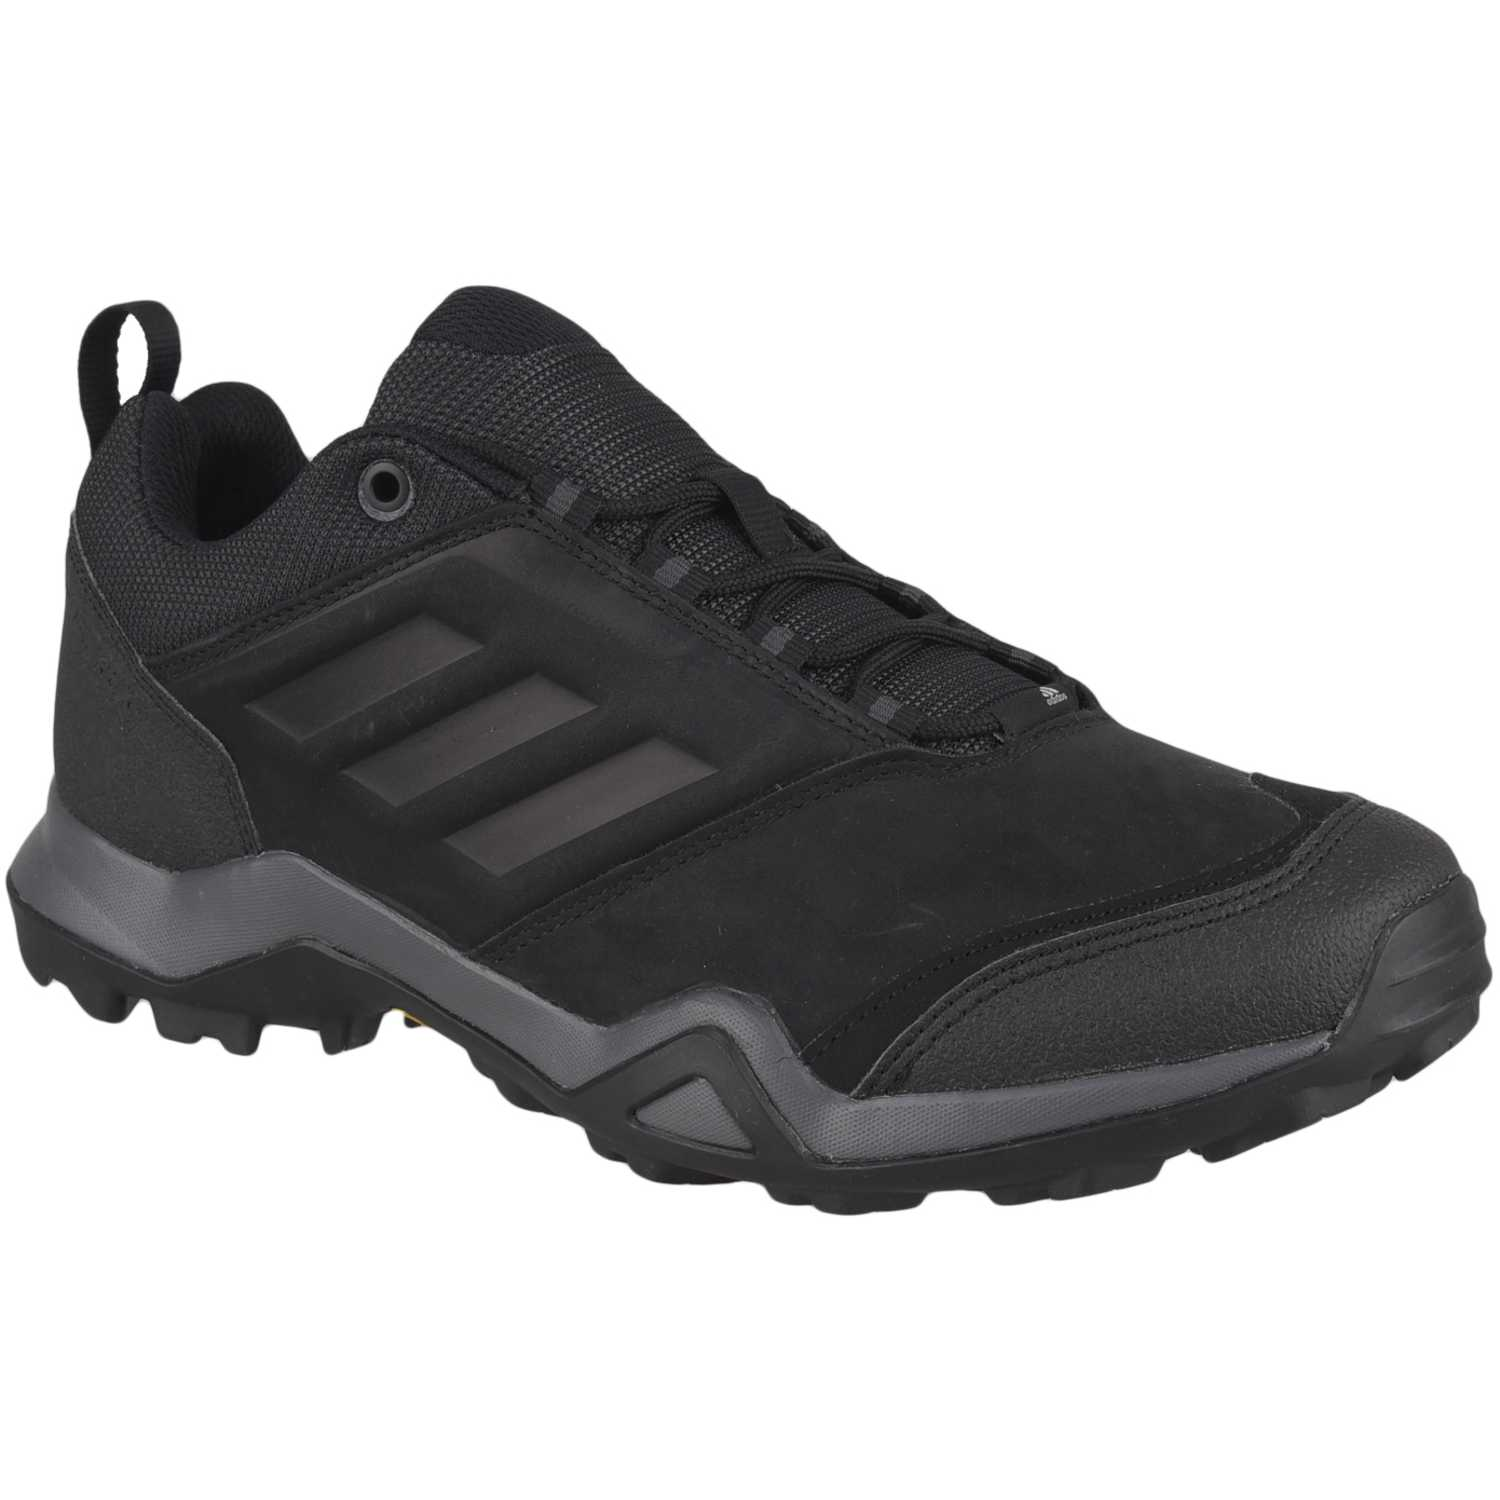 Adidas terrex brushwood leather Negro Calzado hiking